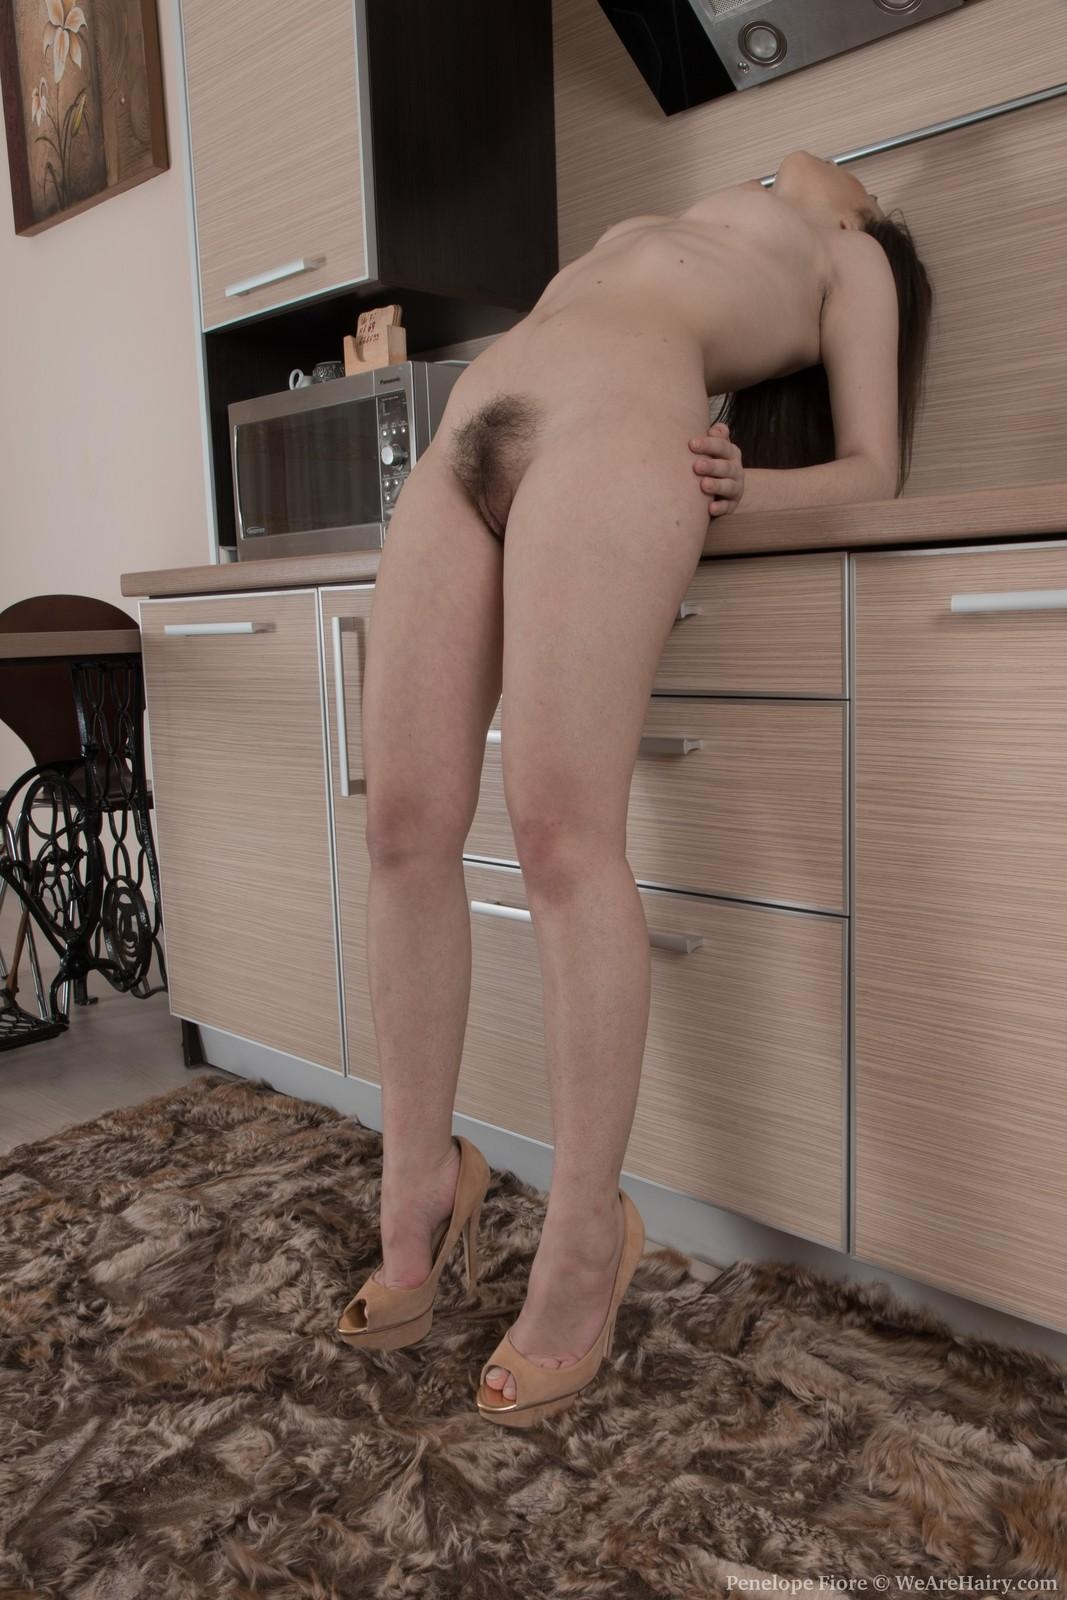 Amateur solo girl Penelope Fiore flaunts her hairy pussy in the kitchen